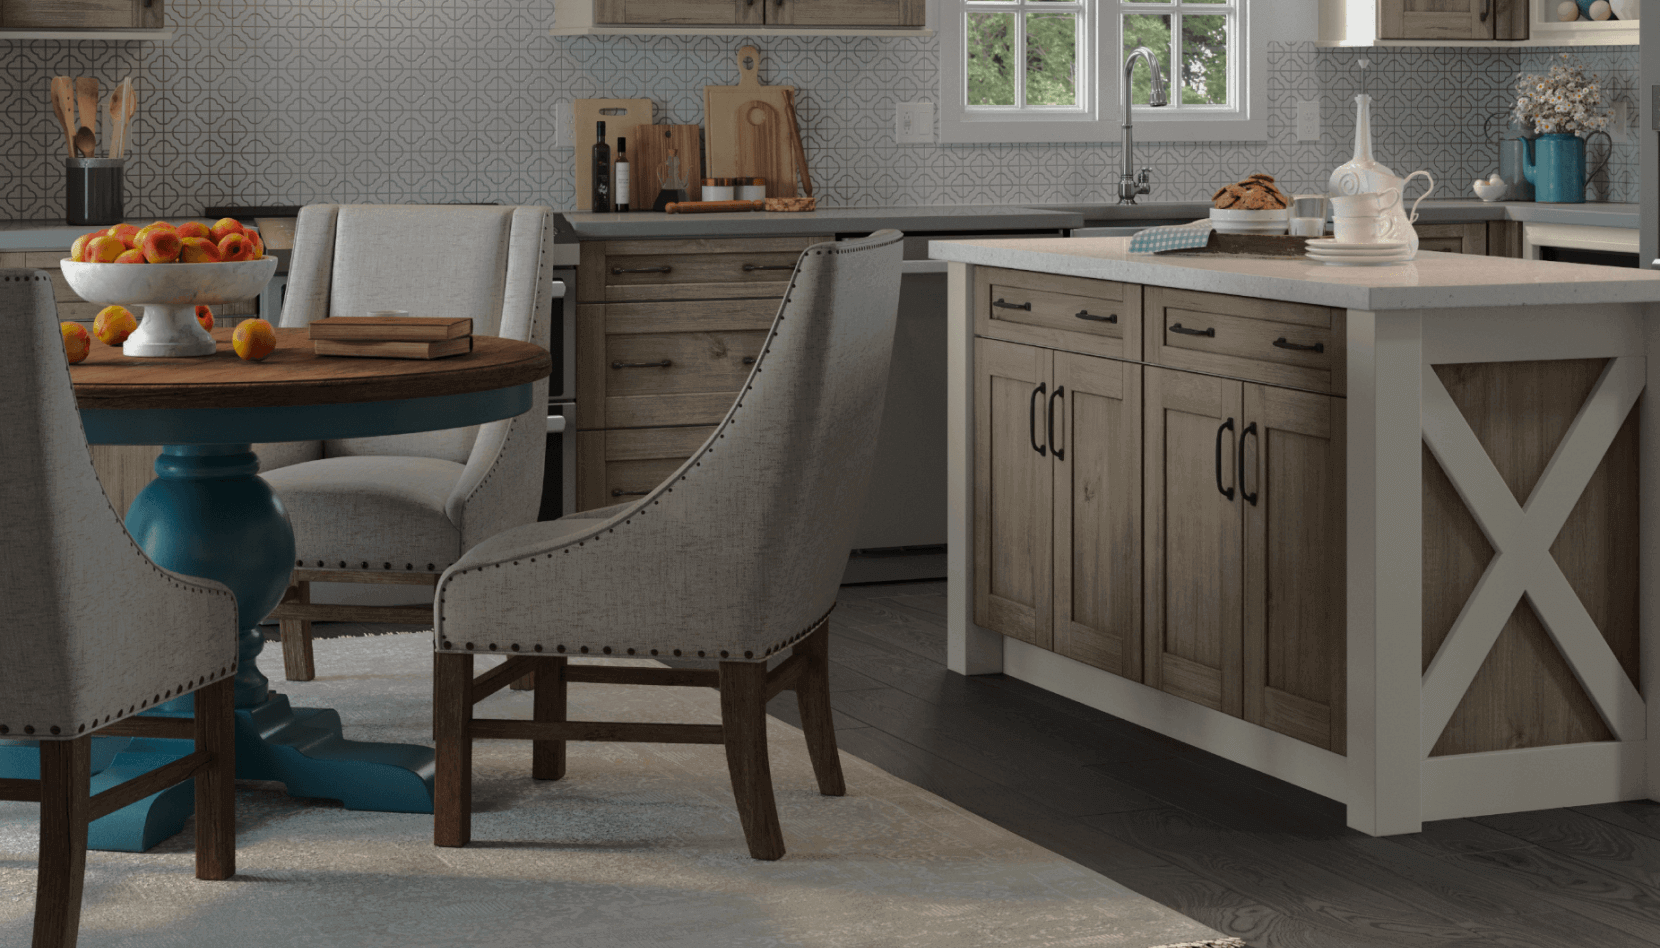 Timberlake Cabinetry As Smart As It Is Beautiful